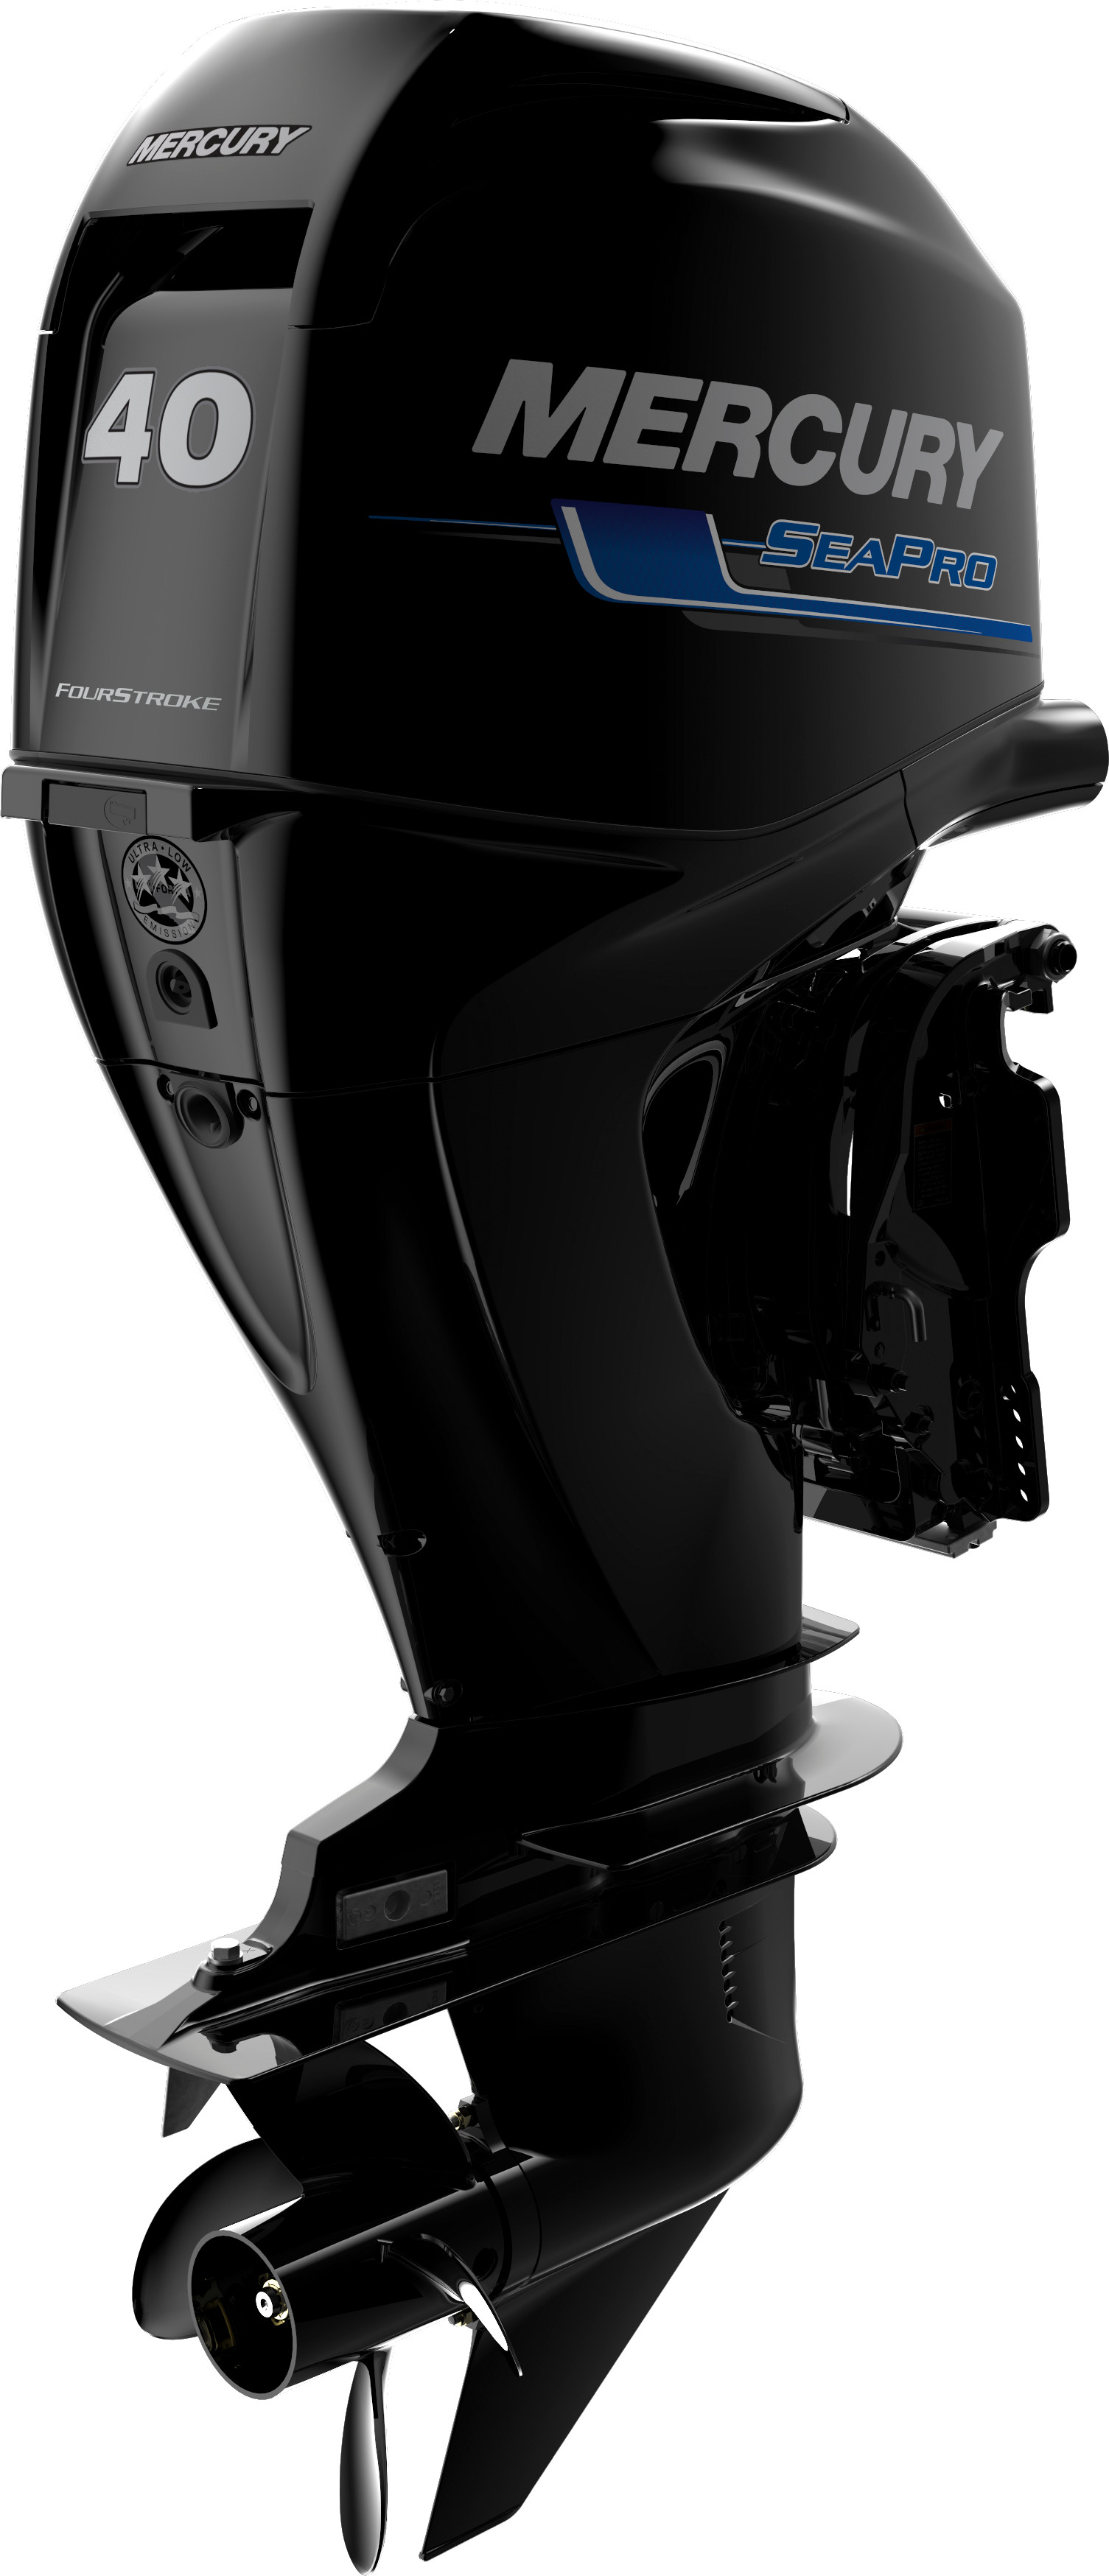 Mercury marine announces new sepro fourstroke engines for Most reliable outboard motor 2016